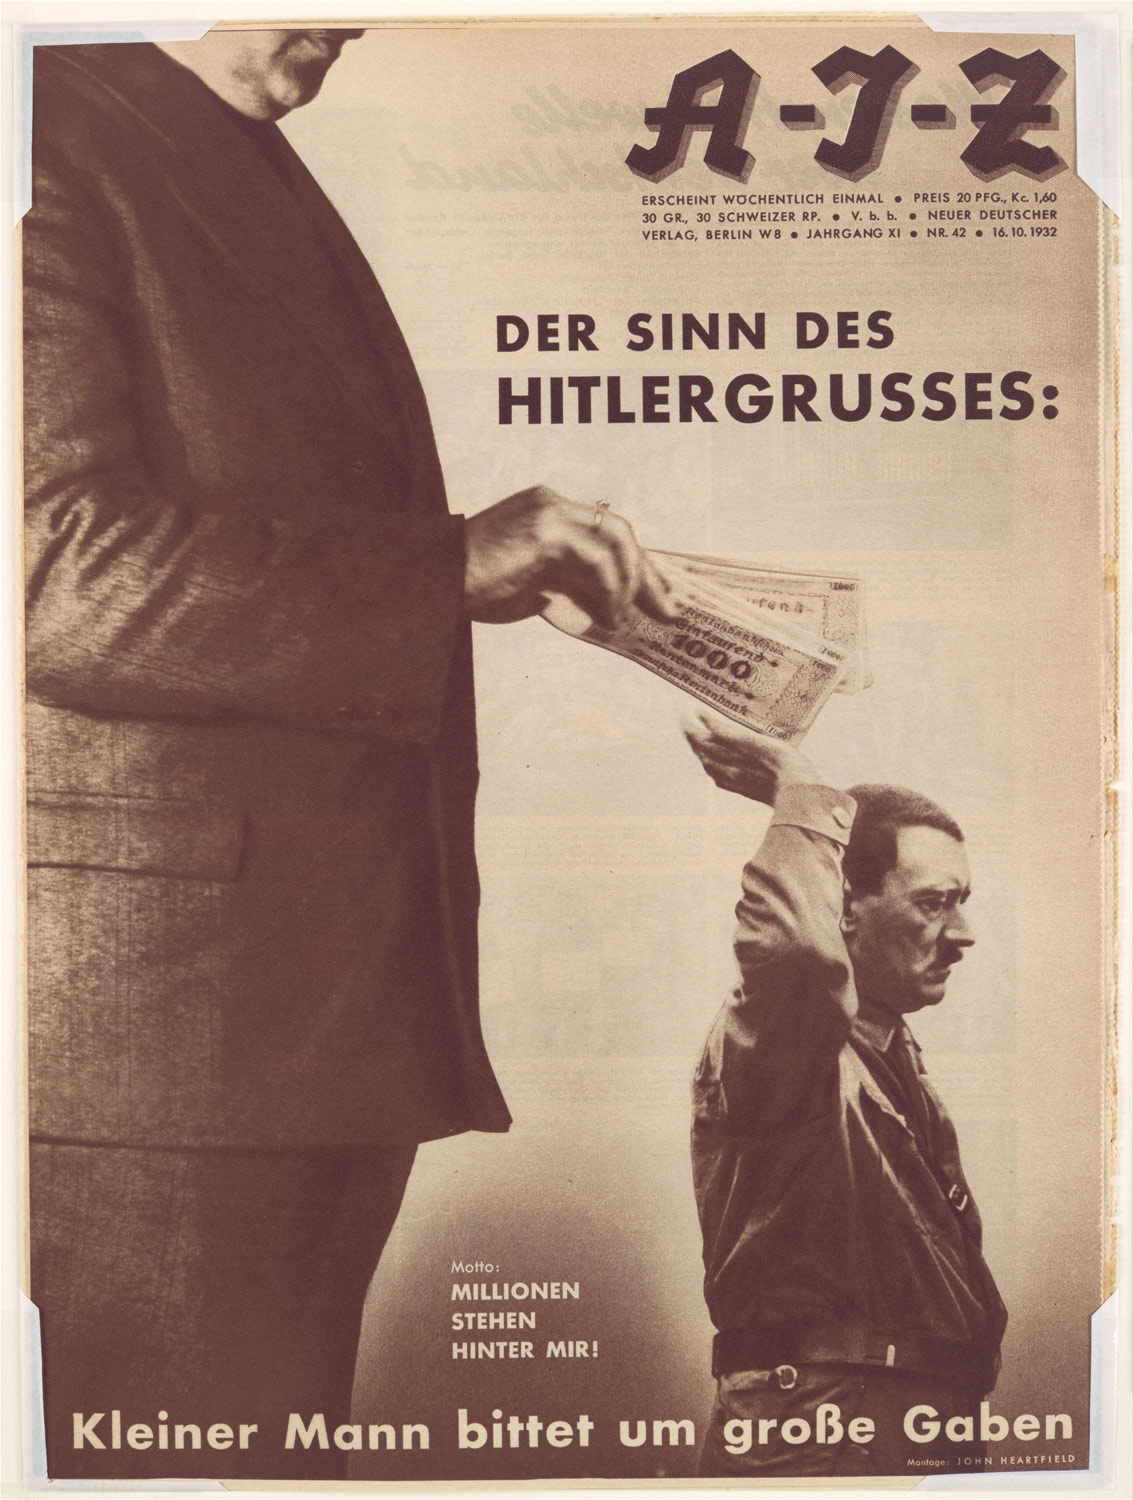 Der Sinn des Hitlergrusses: Kleiner Mann bittet um grosse Gaben. Motto: Millonen Stehen Hinter Mir! [The Meaning of the Hitler Salute: Little man asks for big gifts. Motto: Millions Stand Behind Me!], 1932 John Heartfield (German, 1891–1968)